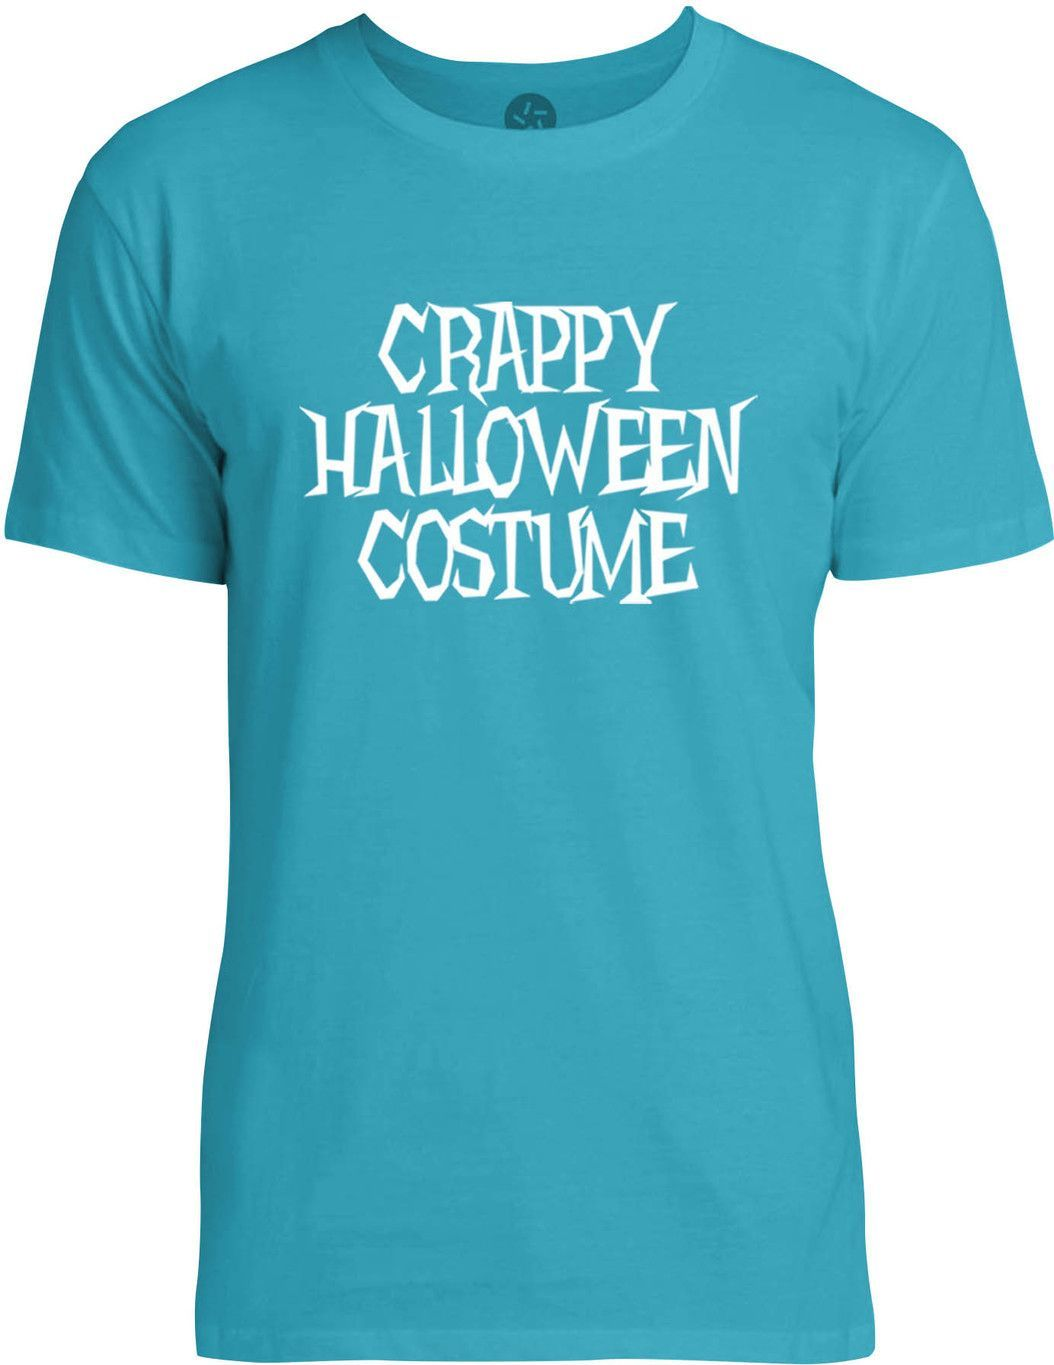 Crappy Halloween Costume (White) Mens Fine Jersey T-Shirt